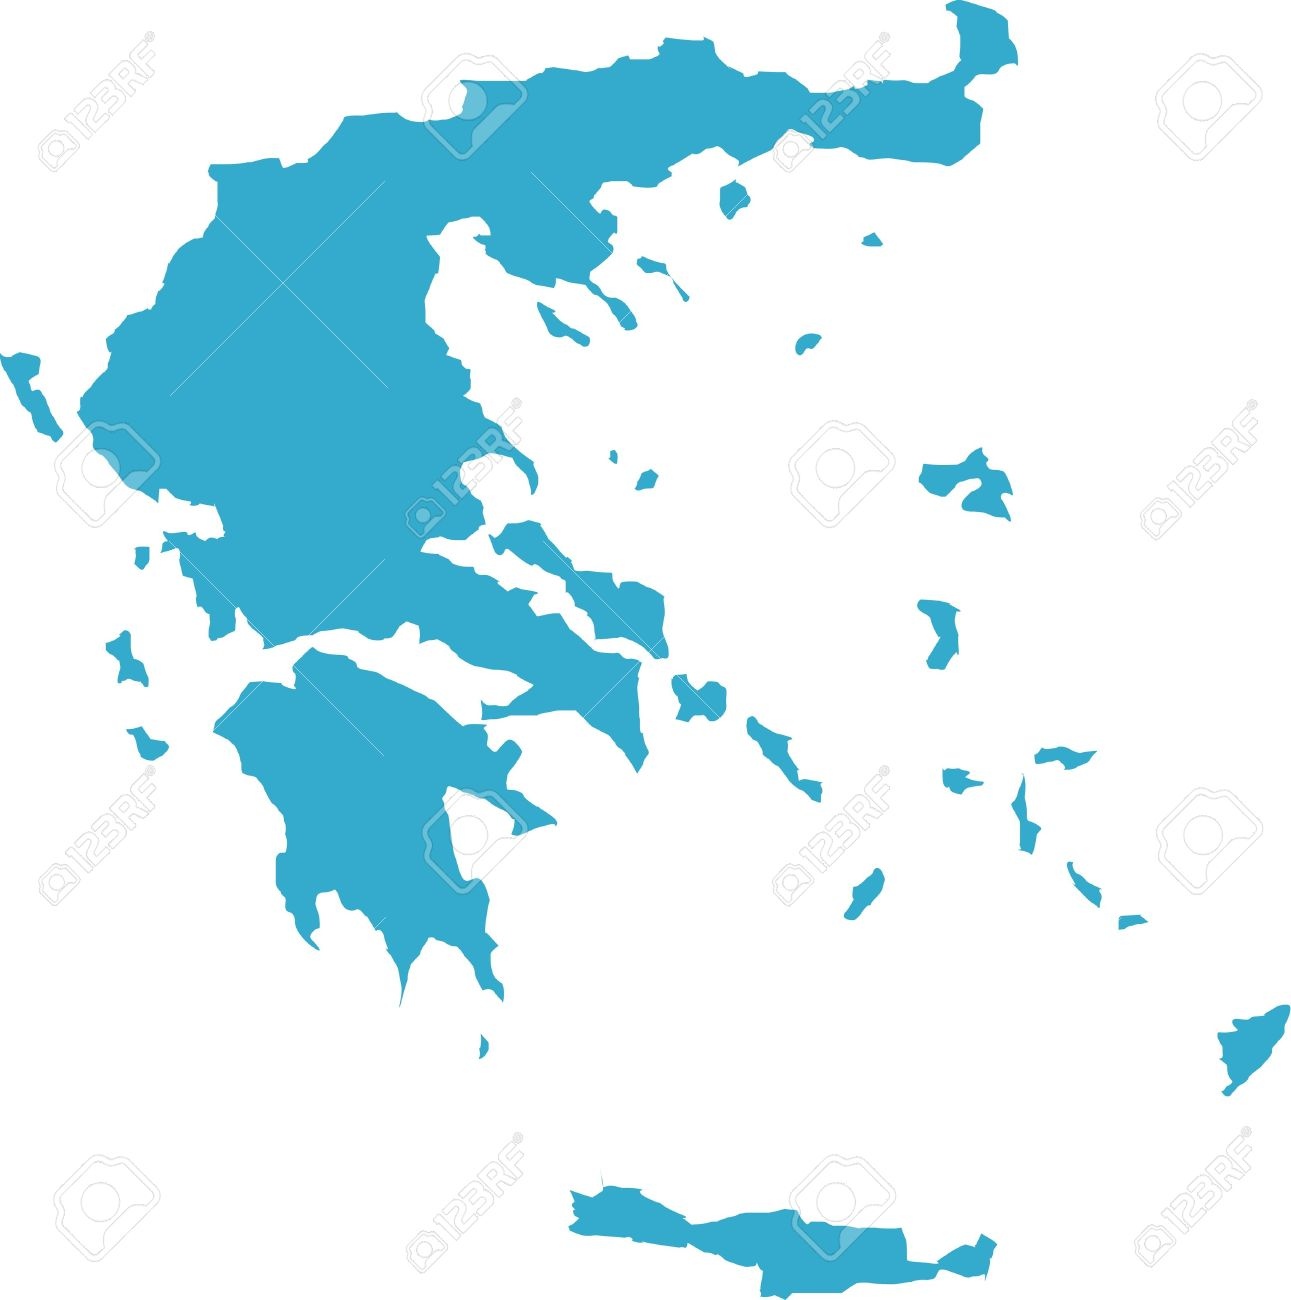 Country Of Greece Map.There Is A Map Of Greece Country